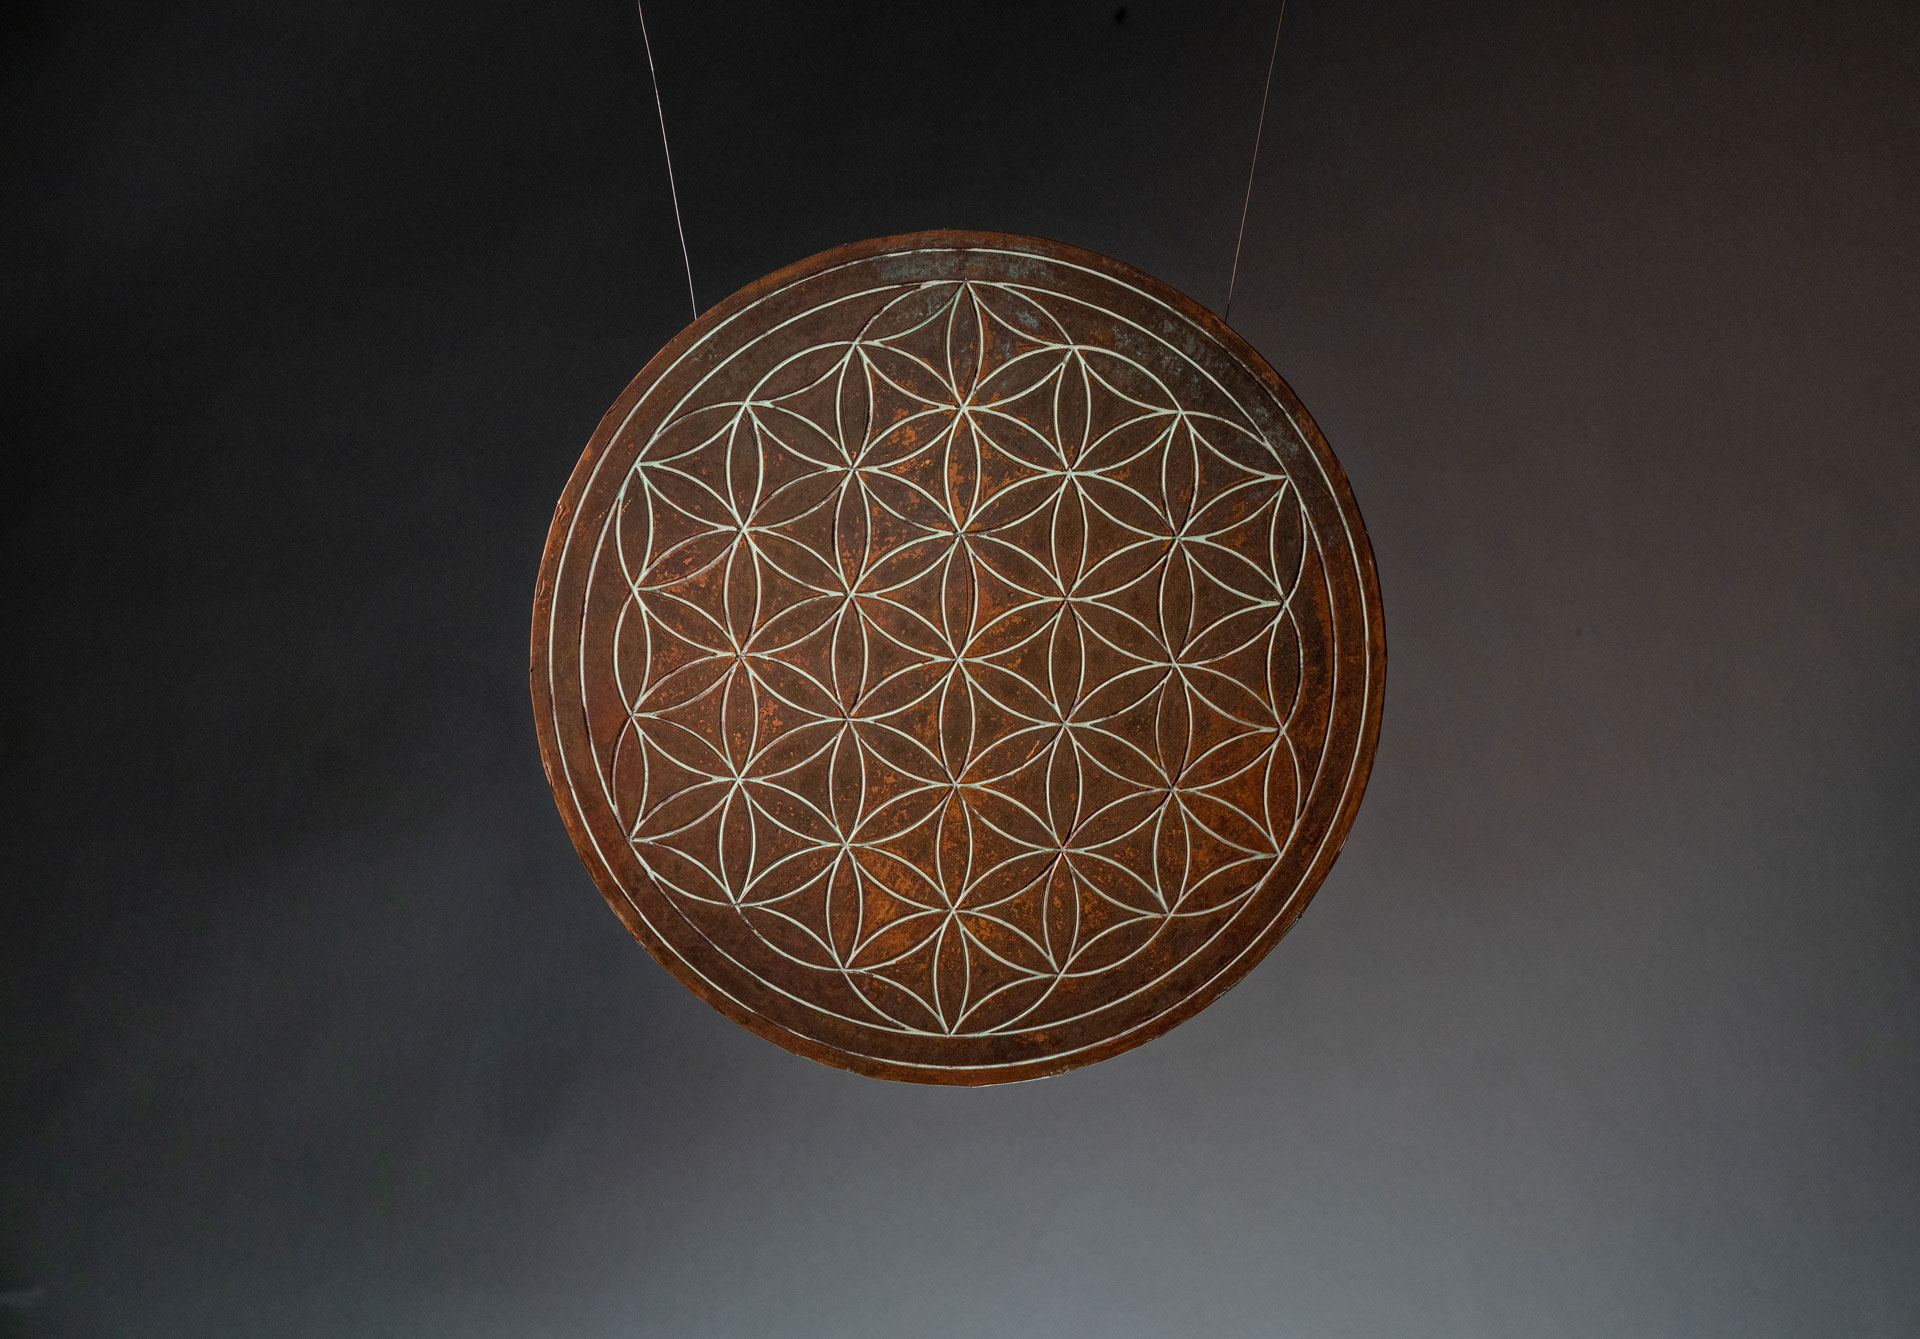 FLOWER OF LIFE - It's perfect form and proportion emits a harmonious elemental flow. Interpreted infinitely throughout the ages from a deeply spiritual aid for meditation to a visual expression of the connections of life that run through all sentient beings. MATERIAL: Copper